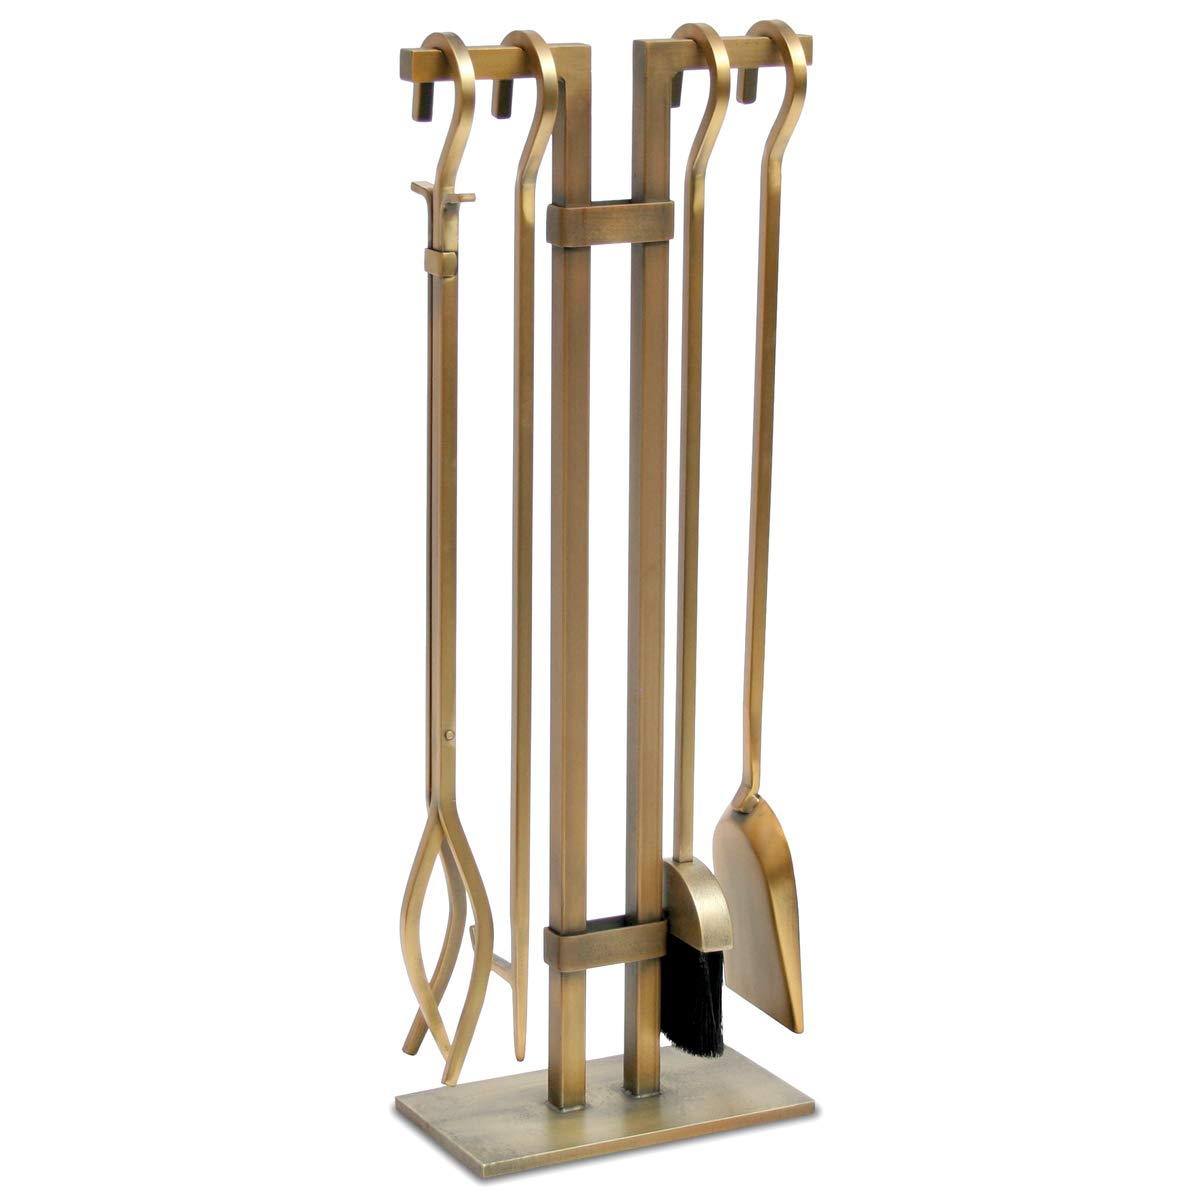 Pilgrim Home and Hearth 18086 Sinclair Fireplace Tool Set, Burnished Brass by Pilgrim Home and Hearth